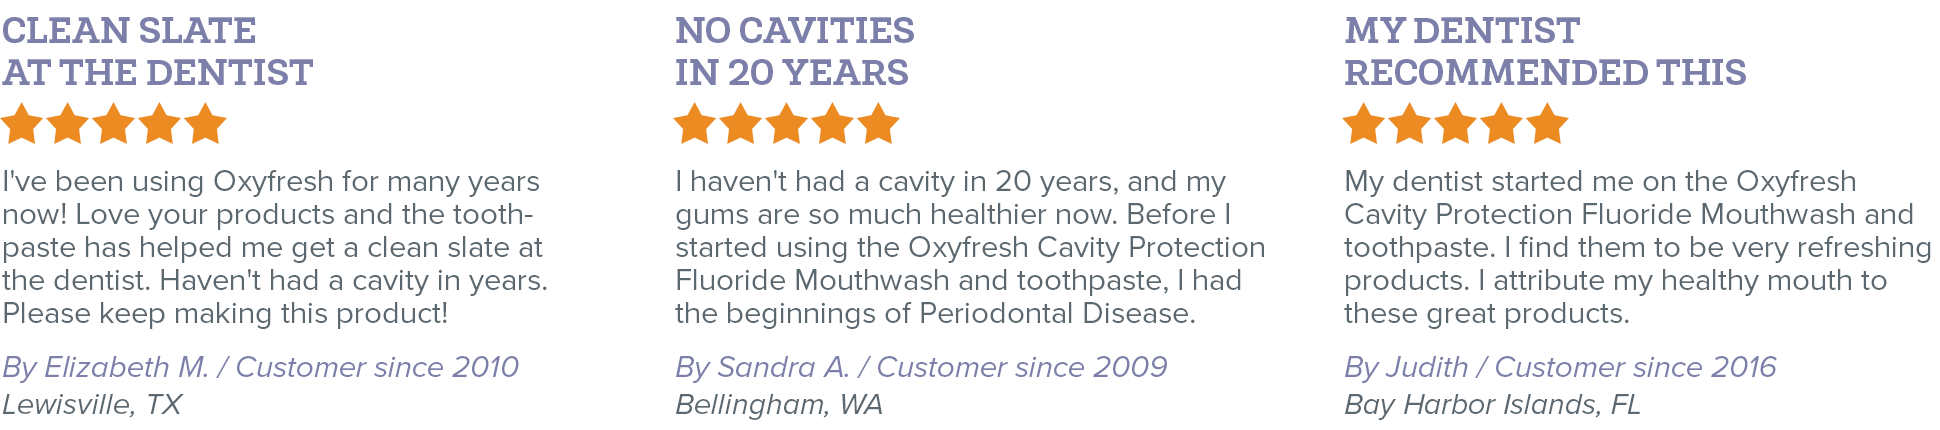 Oxyfresh - Fight Cavities and Eliminate Bad Breath - Cavity Protection Fluoride Mouthwash Reviews